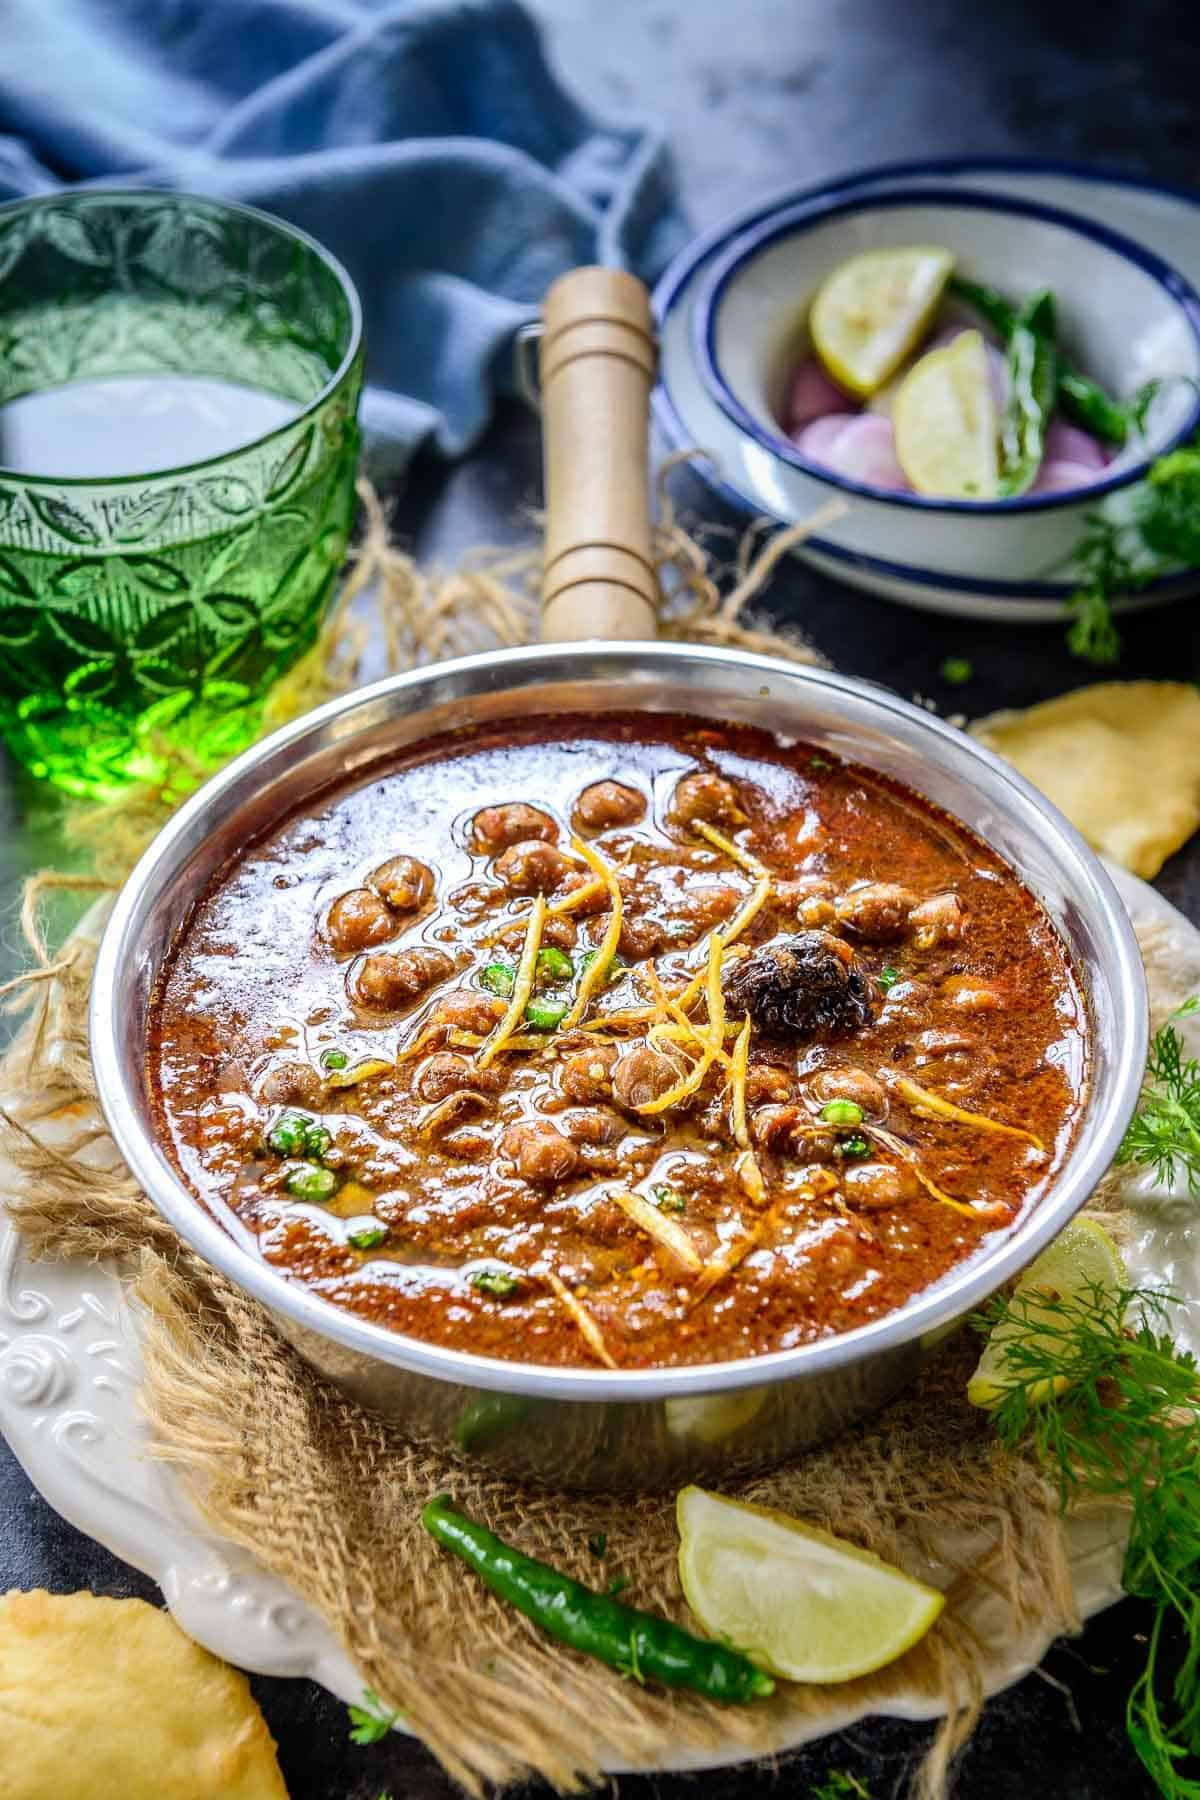 Punjabi Chole served in a bowl.